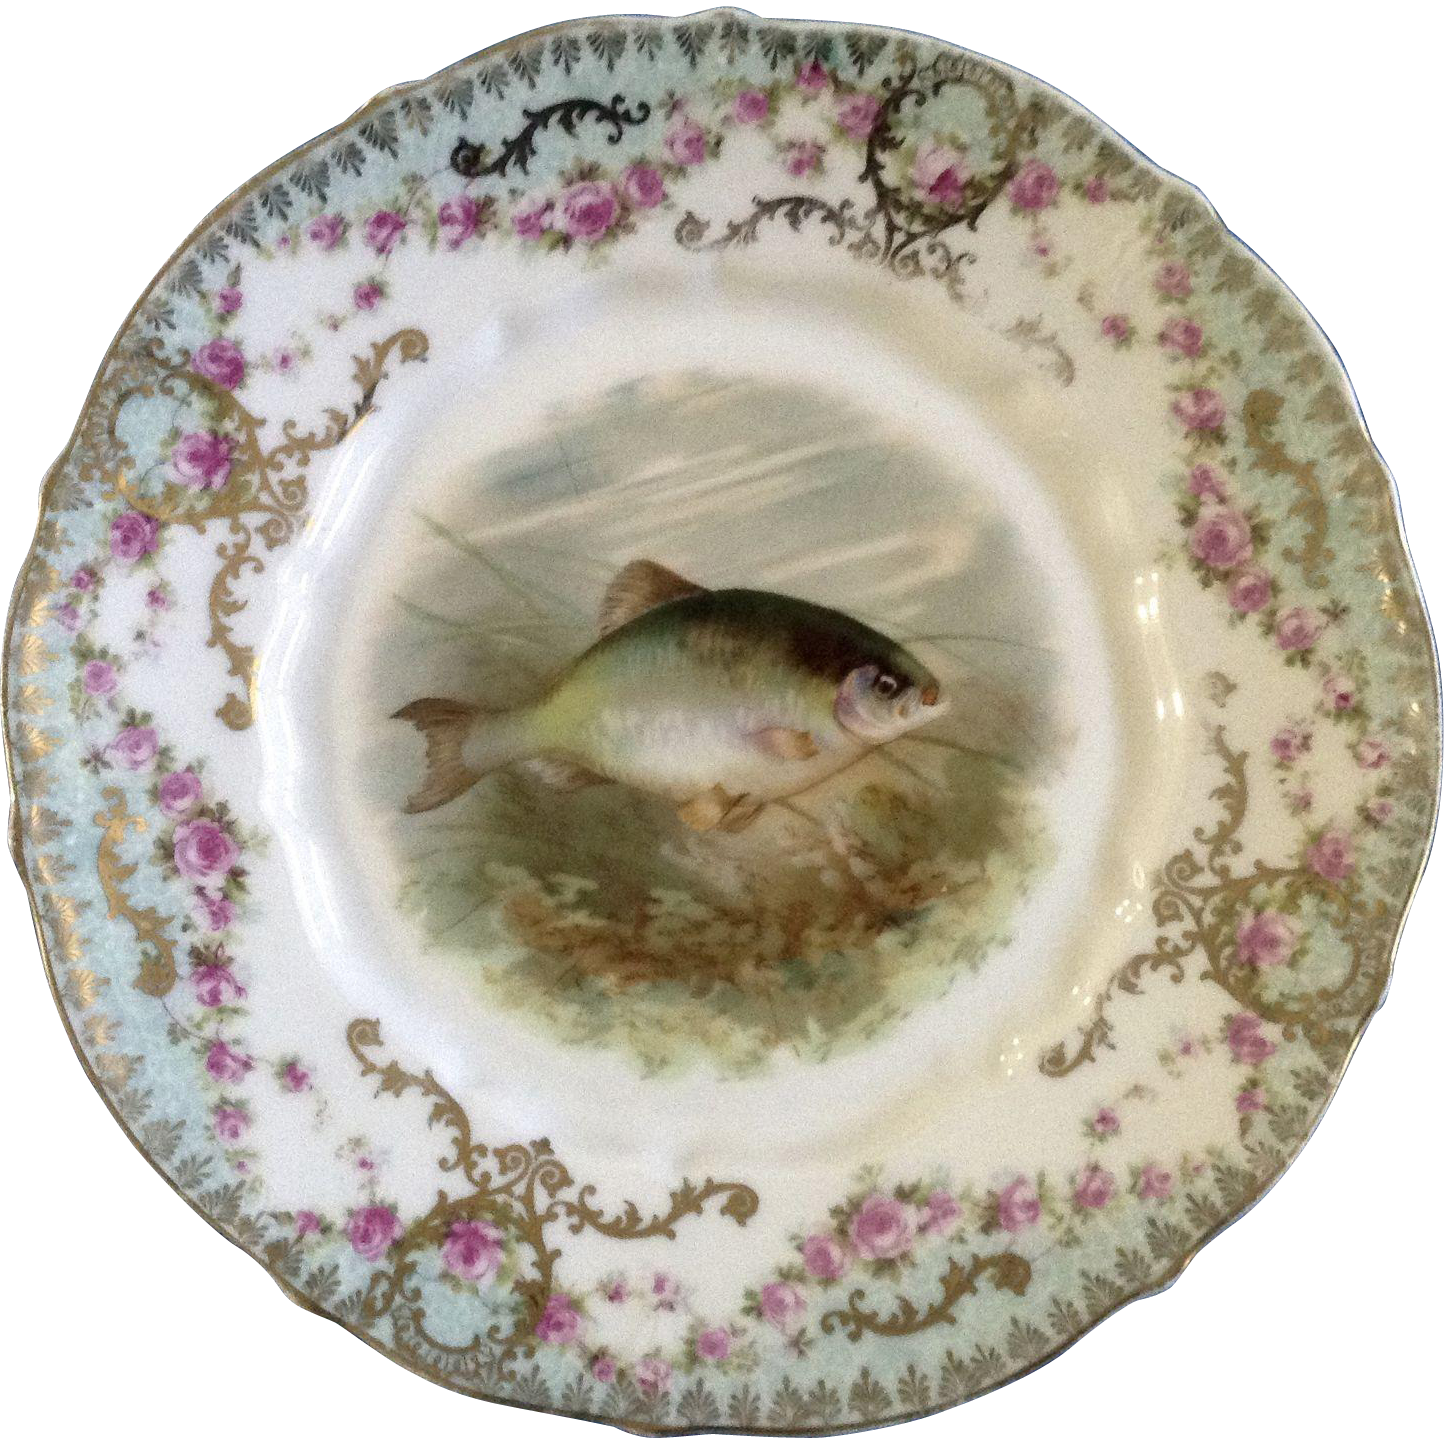 Antique Carl Tielsch Fish CT Germany Porcelain Luncheon Plate 8-1/2  Hand Painted Gold Trim 1900-1909  sc 1 st  Pinterest & Antique Carl Tielsch Fish CT Germany Porcelain Luncheon Plate 8-1/2 ...